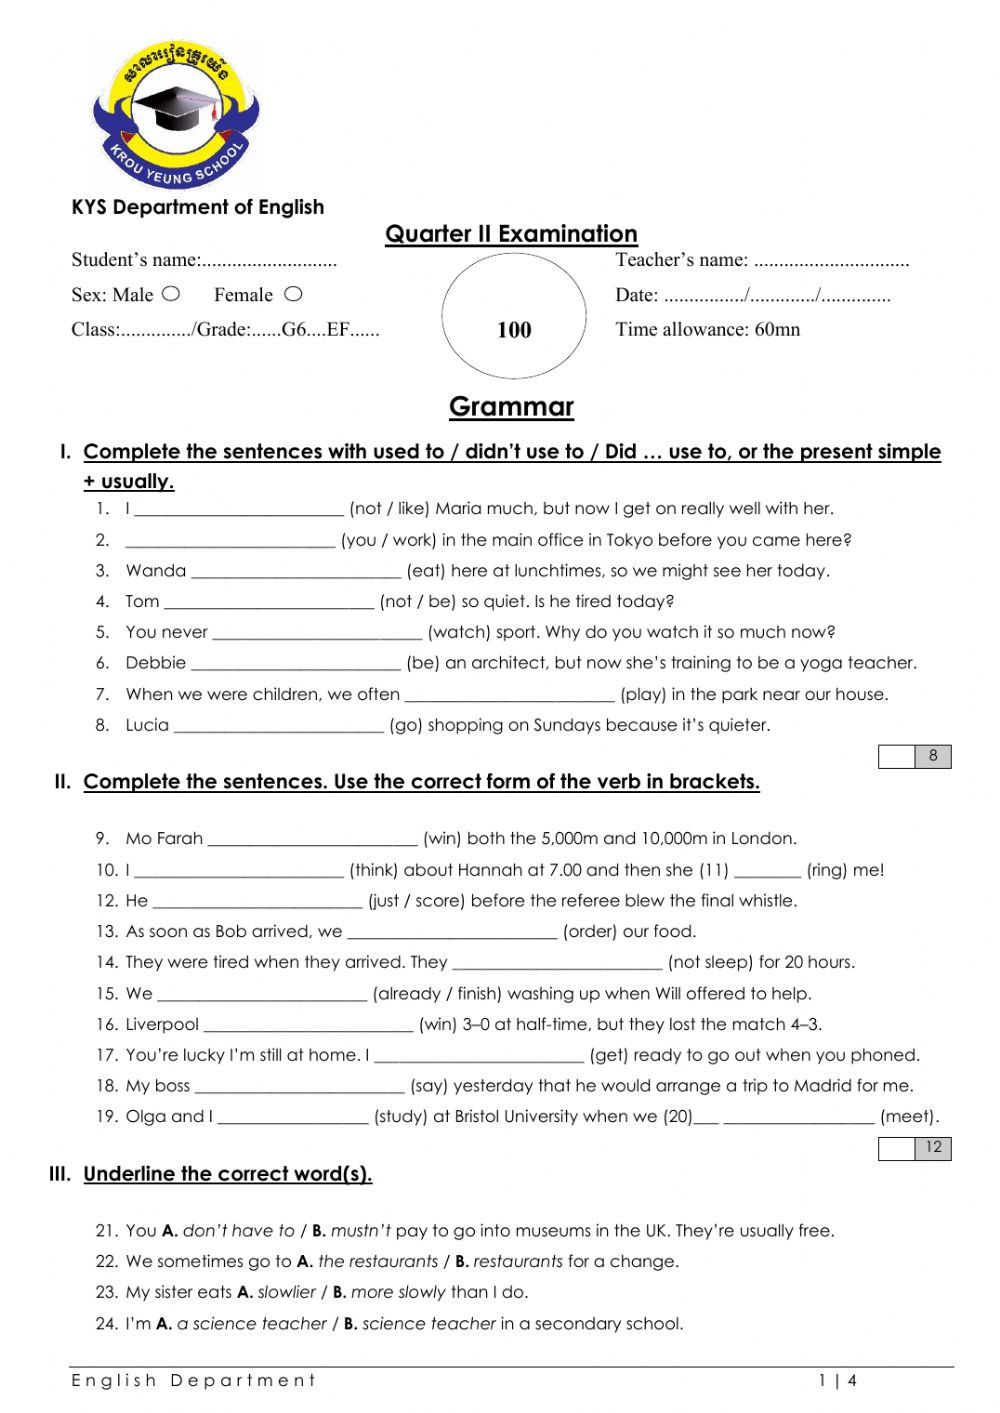 Grammar Worksheets 6th Graders 6th Grade Math S Summer themed Math Worksheets Grade 6